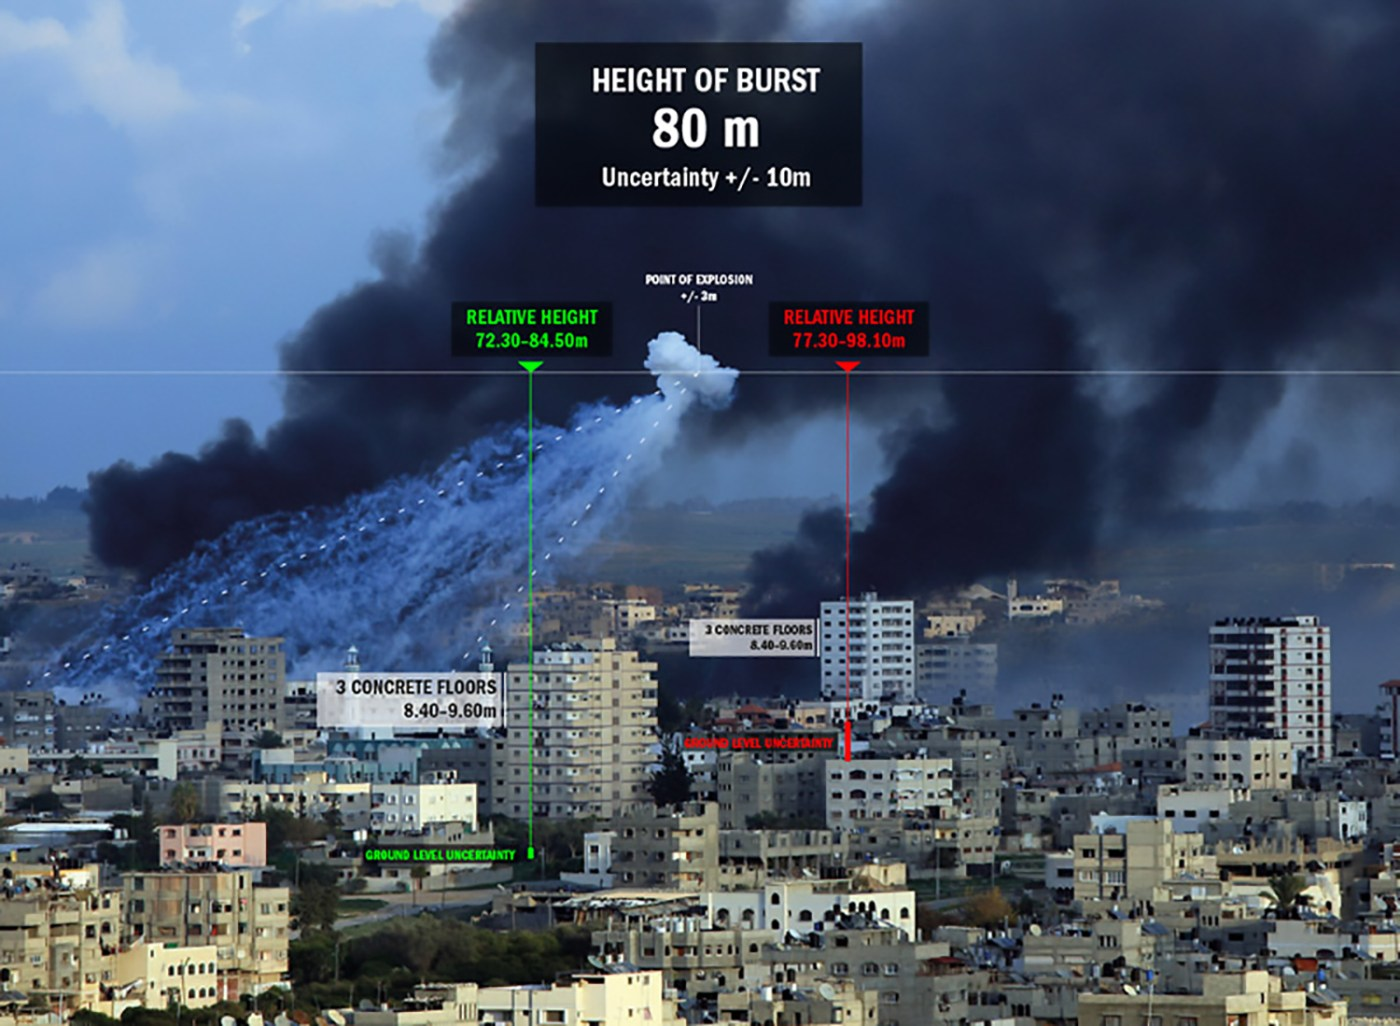 """The Use of White Phosphorus in Urban Environments 1: Methodology for the calculation of the Height of Burst (HoB) of a White Phosphorus projectile on a still photograph of Rafah (Gaza Strip) on 11 January 2009, using reference heights of surrounding architectural features. Extract from the report """"The Use of White Phosphorus Munitions in Urban Environments: An Effects-Based Analysis"""" by Forensic Architecture and Situ Studio (2012). Photography by Iyad El Baba/UNICEF. Courtesy of Forensic Architecture."""